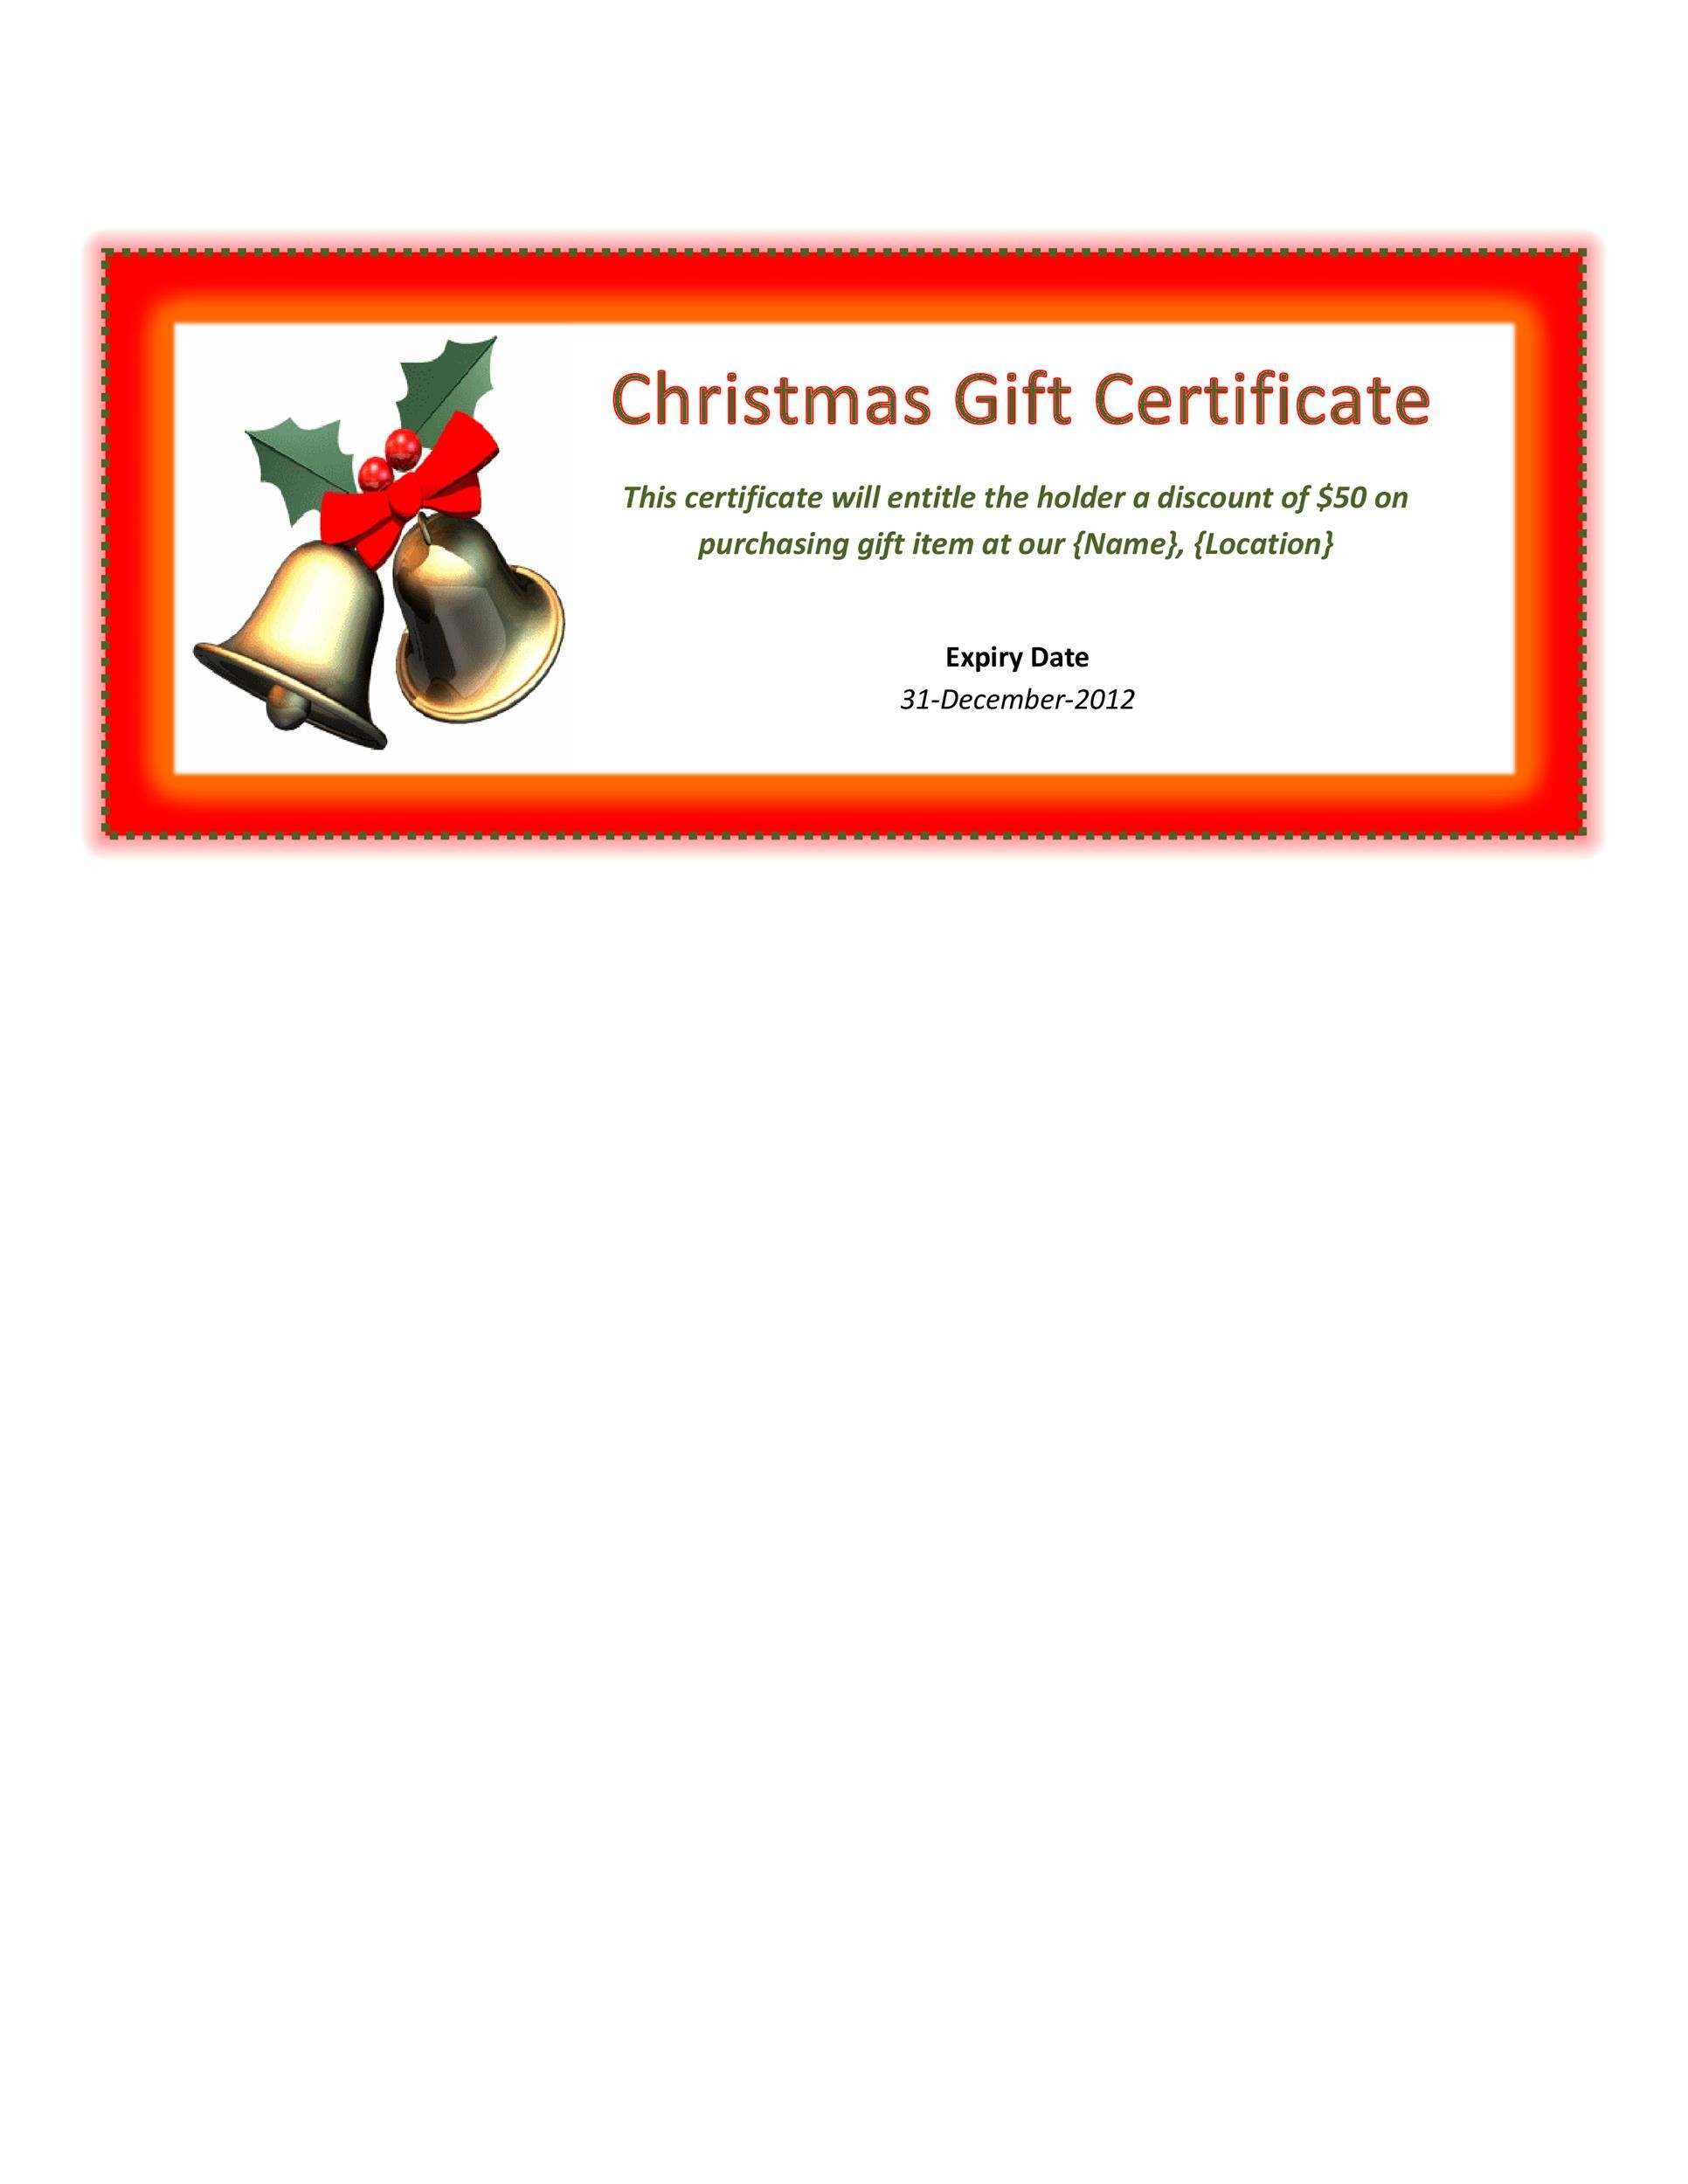 40+ Free Gift Certificate Templates - Template Lab - gift certifcate template